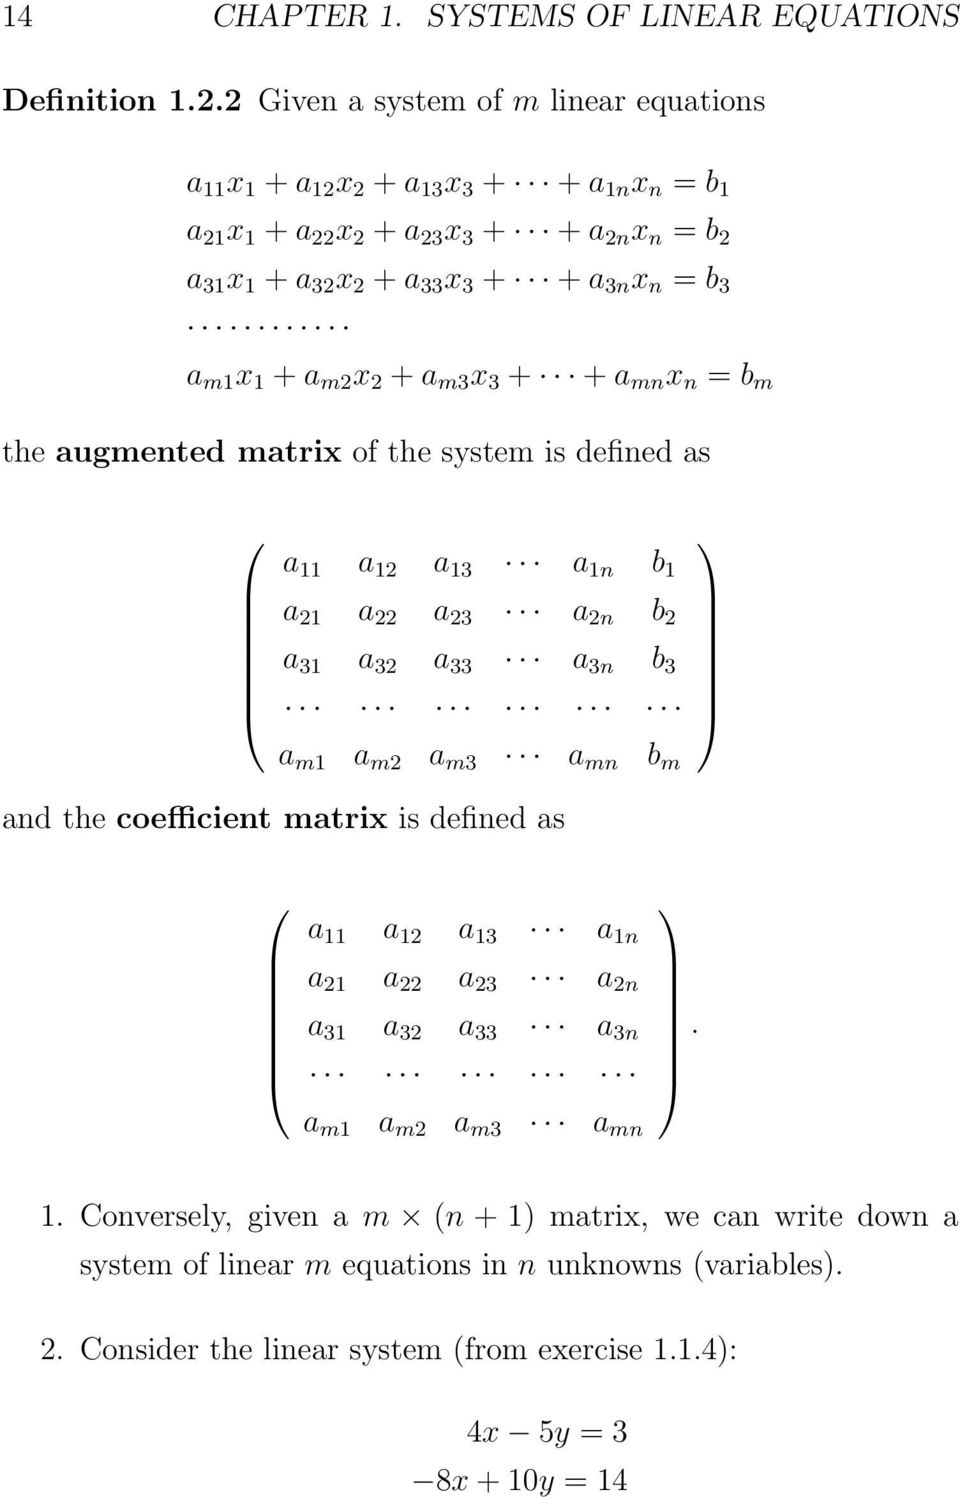 a m1 x 1 + a m2 x 2 + a m3 x 3 + + a mn x n = b m the augmented matrix of the system is defined as a 11 a 12 a 13 a 1n b 1 a 21 a 22 a 23 a 2n b 2 a 31 a 32 a 33 a 3n b 3 a m1 a m2 a m3 a